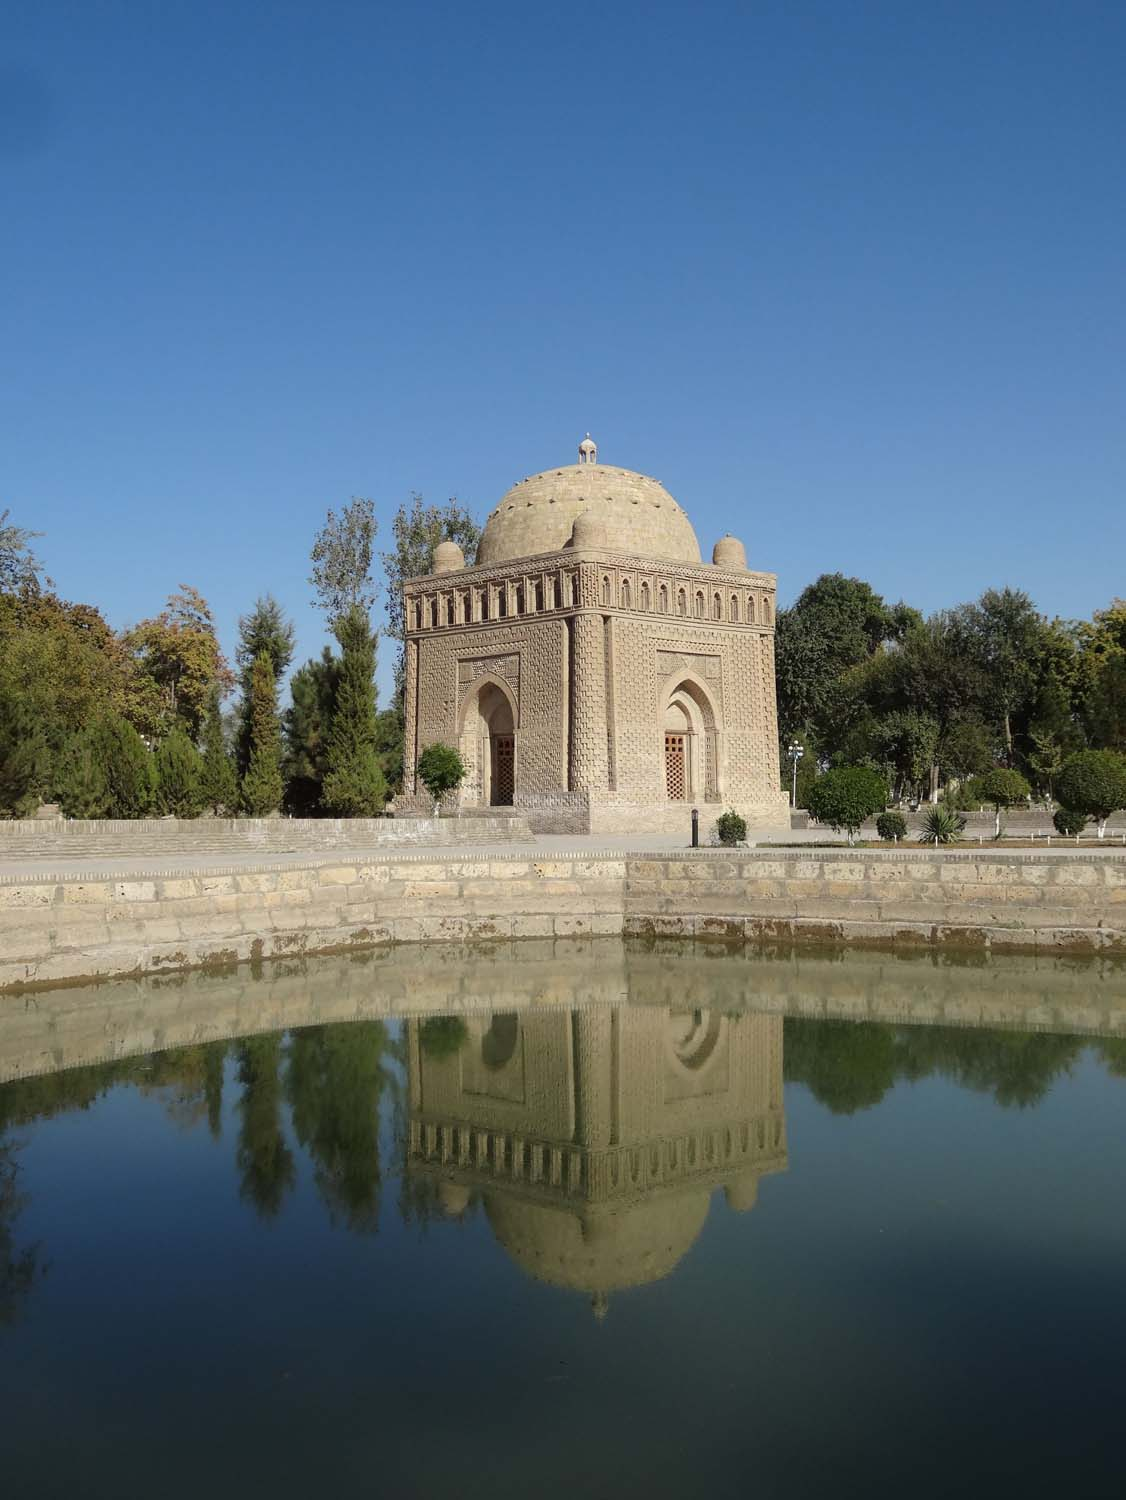 Ismail Samani mausoleum built in 905, still standing unrestored - impressive